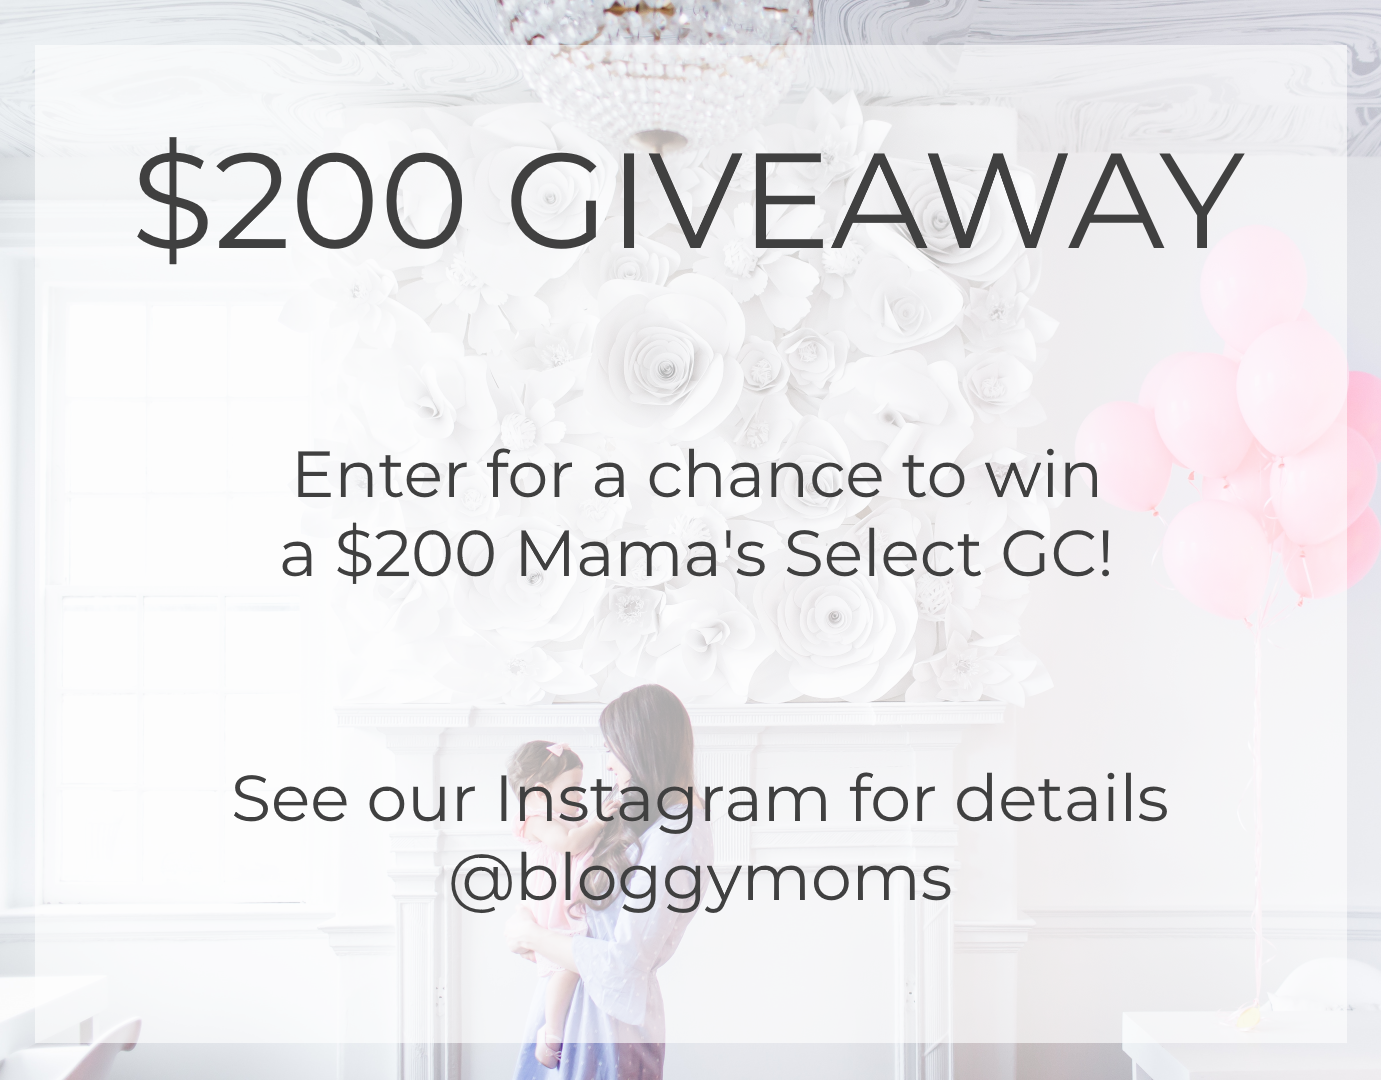 mamas select gift card giveaway